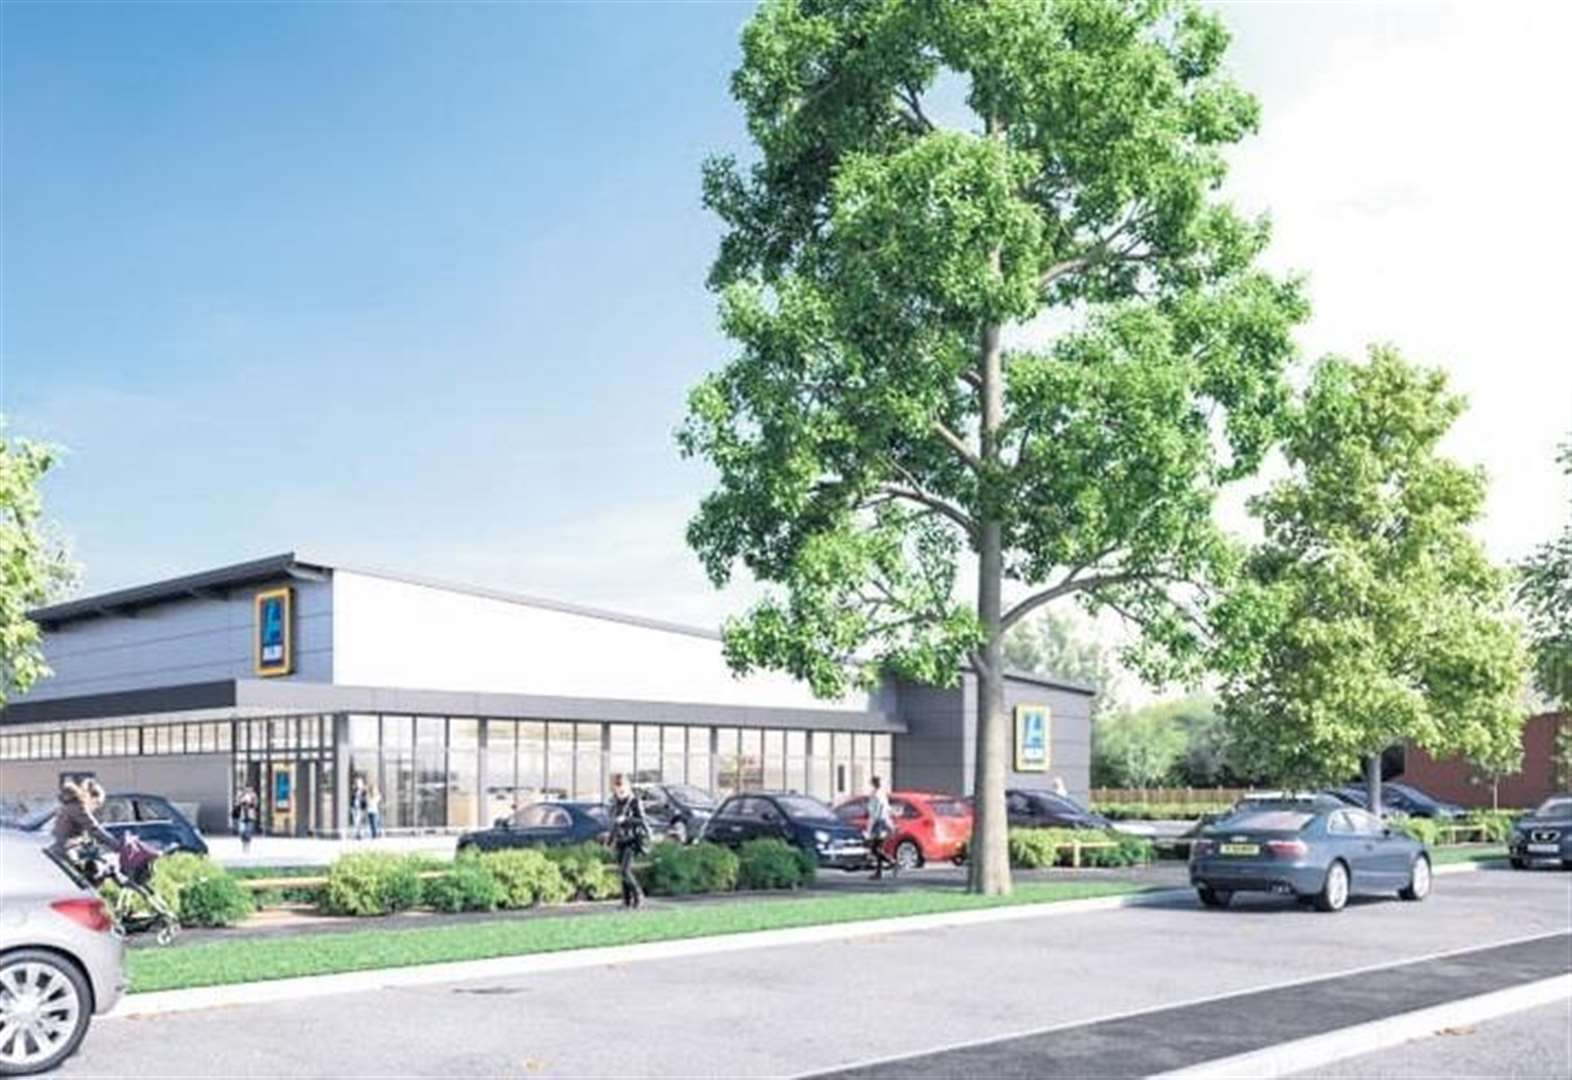 Aldi to move into new superstore